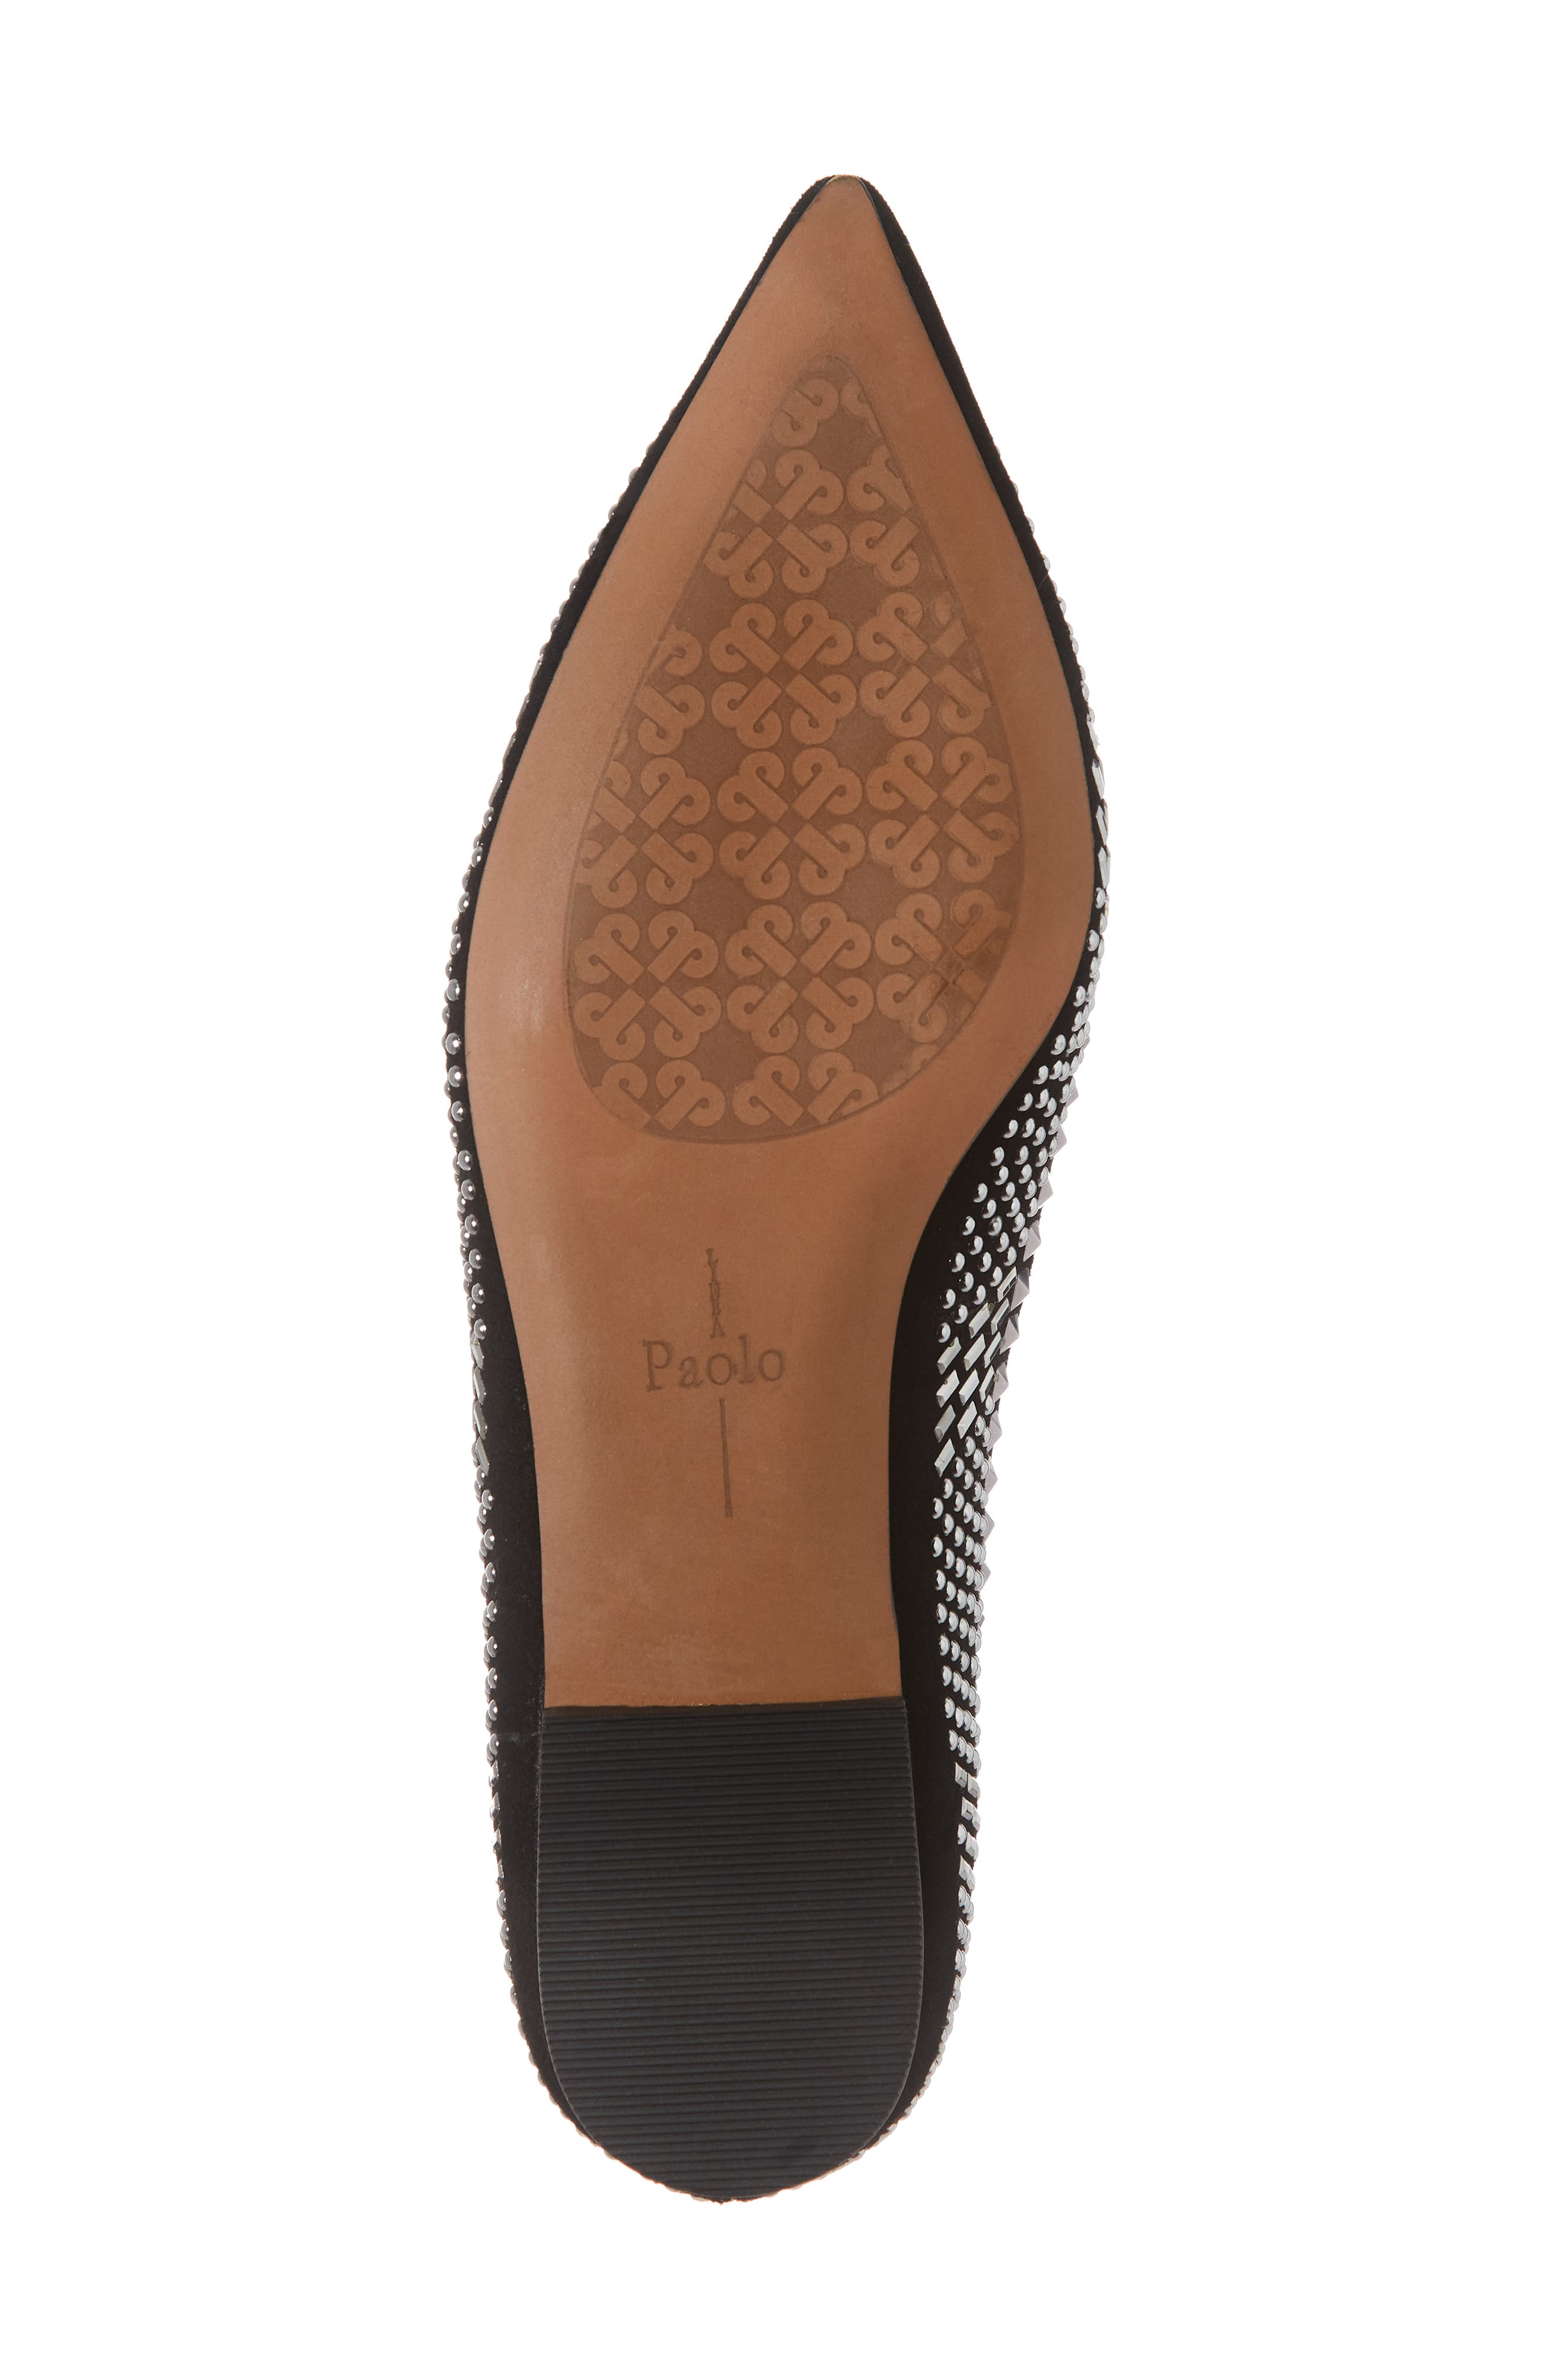 LINEA PAOLO, Portia Studded Loafer, Alternate thumbnail 6, color, BLACK SUEDE